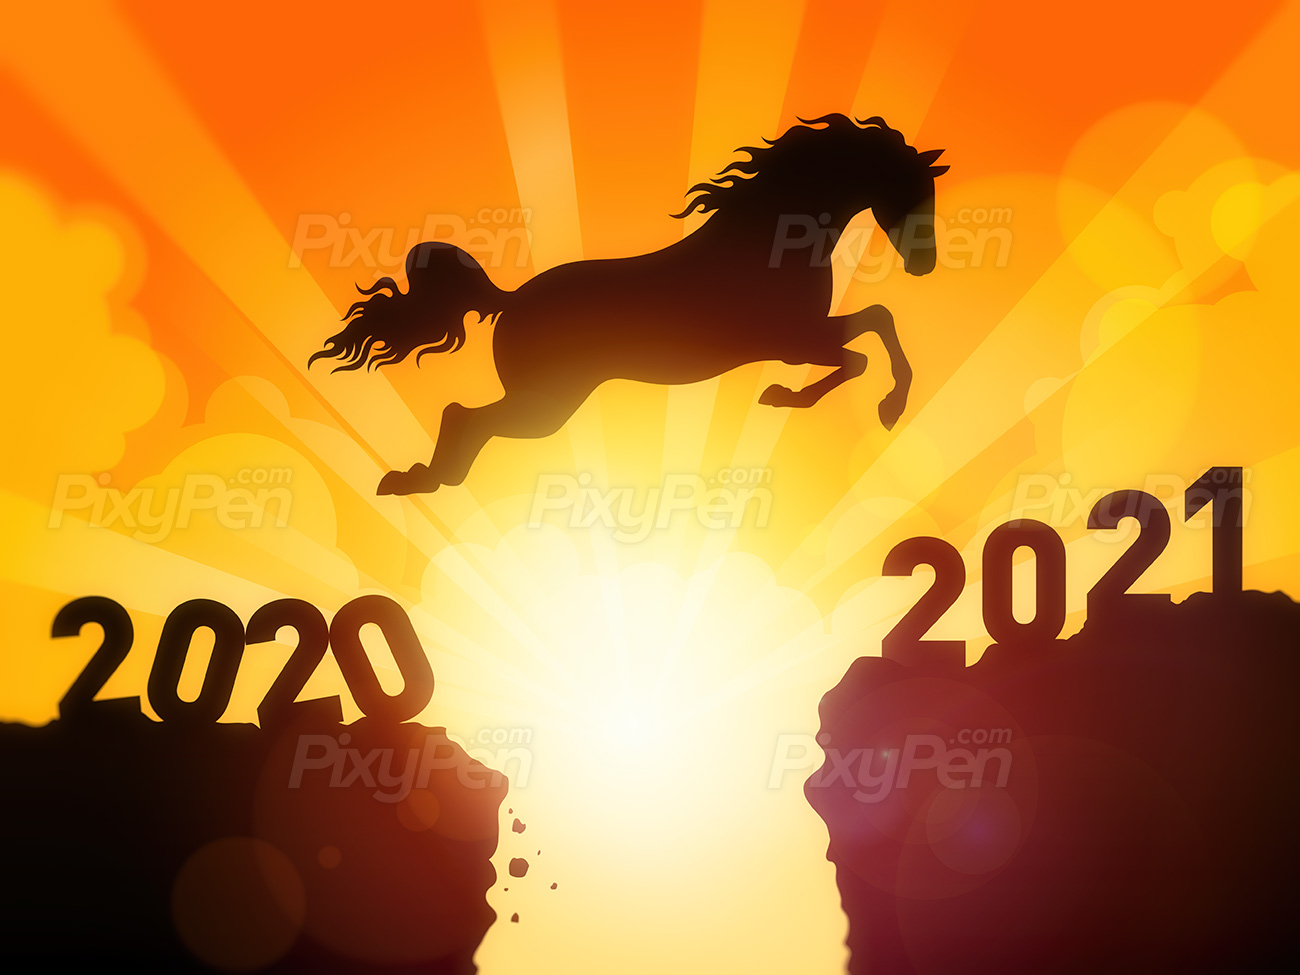 Happy-New-Year-2021-Blessings-546-2.jpg